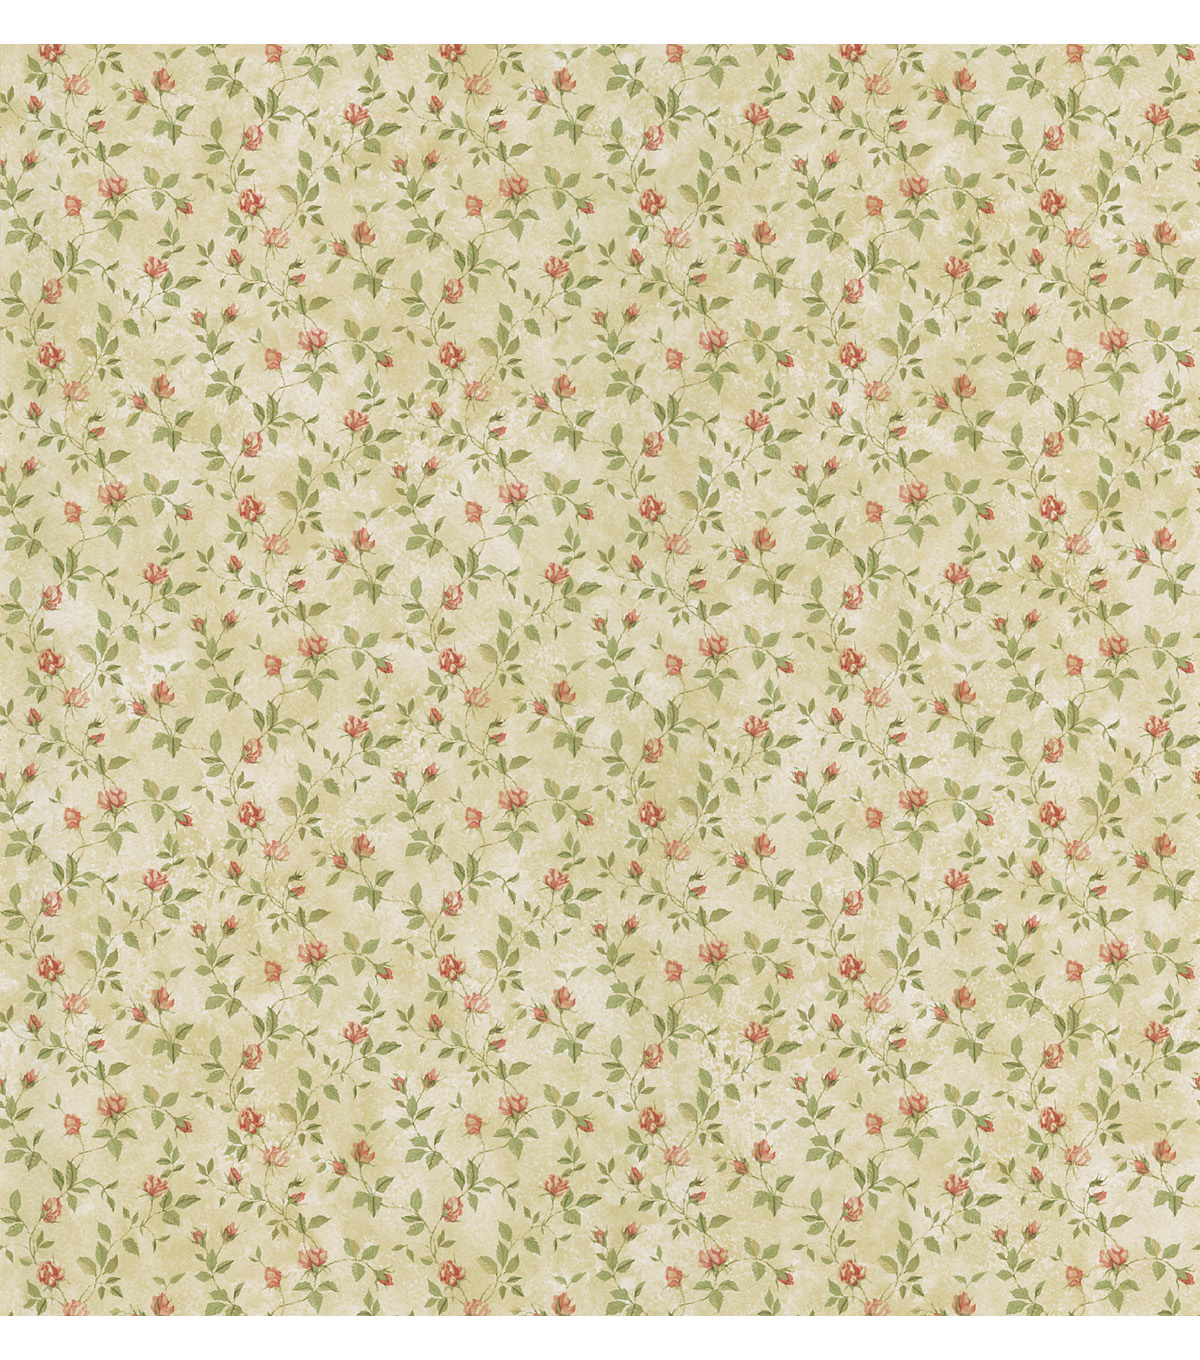 Abigail Beige Rosebud Trail Wallpaper Sample